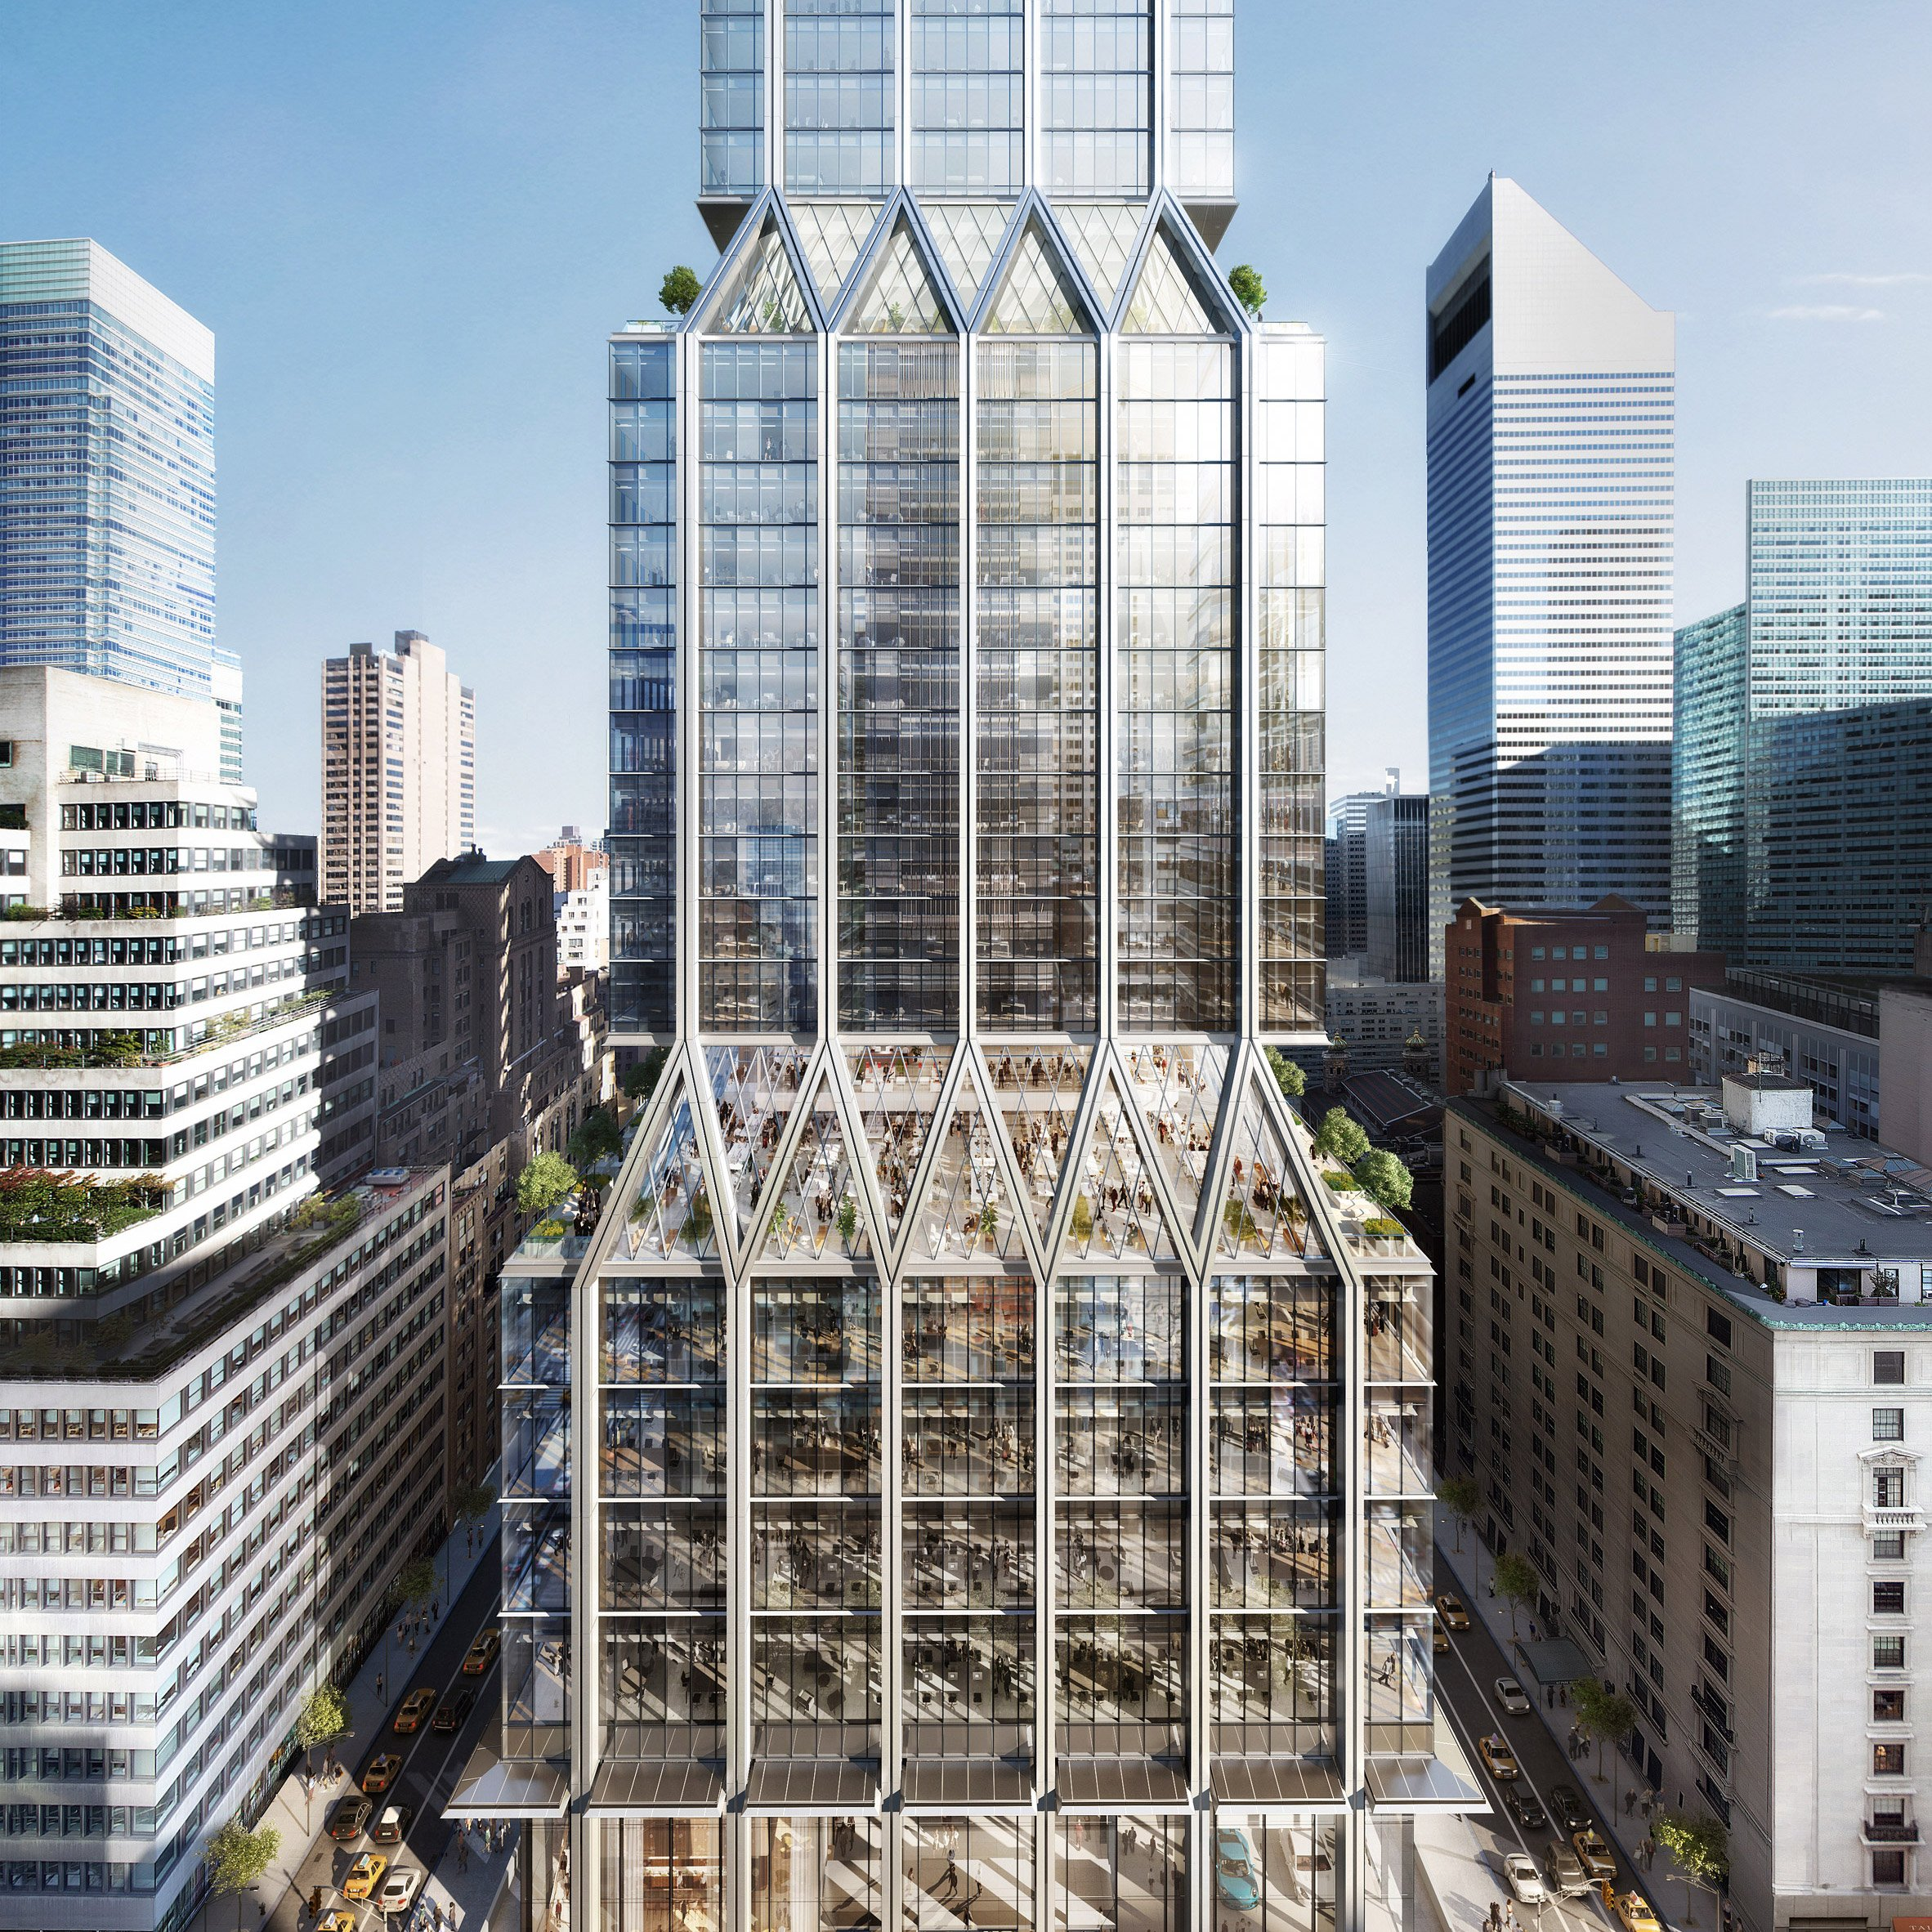 12 new buildings to look forward to in 2020: 425 Park Avenue, US, Foster + Partners